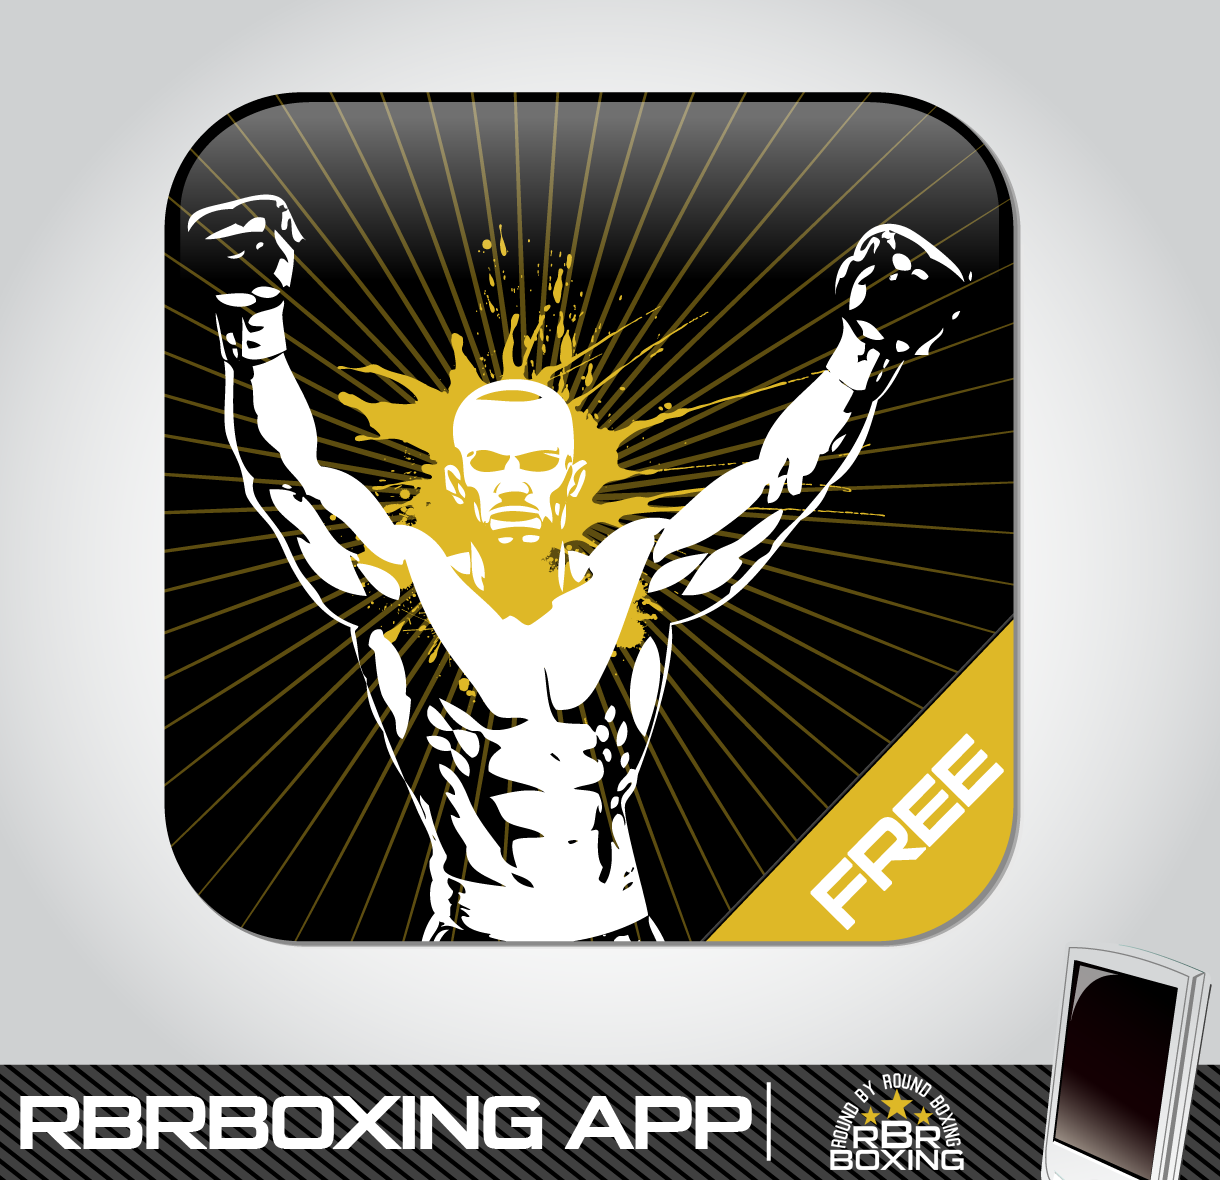 DOWNLOAD THE RBRBOXING APP